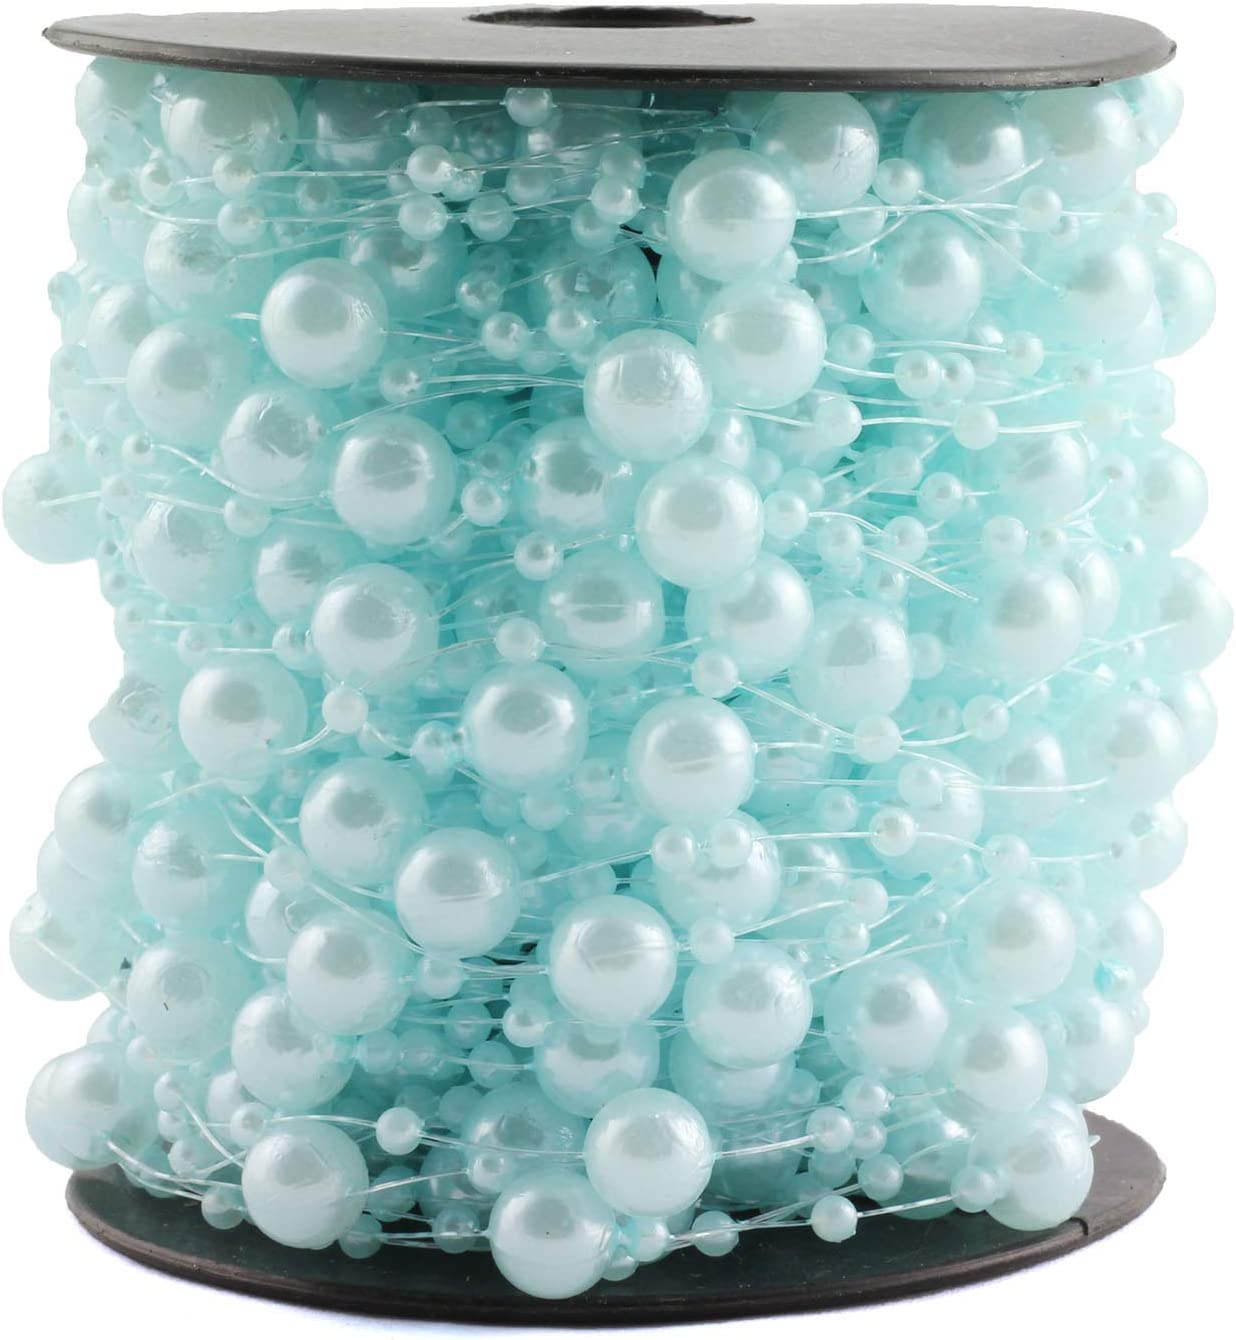 NX Garden Pearl Garland 30m Fishing Line Artificial Pearls Beads Chain String Garland Roll Pearl Beaded Trim for DIY Wedding Party Bouquet Decor 8mm and 3mm Blue